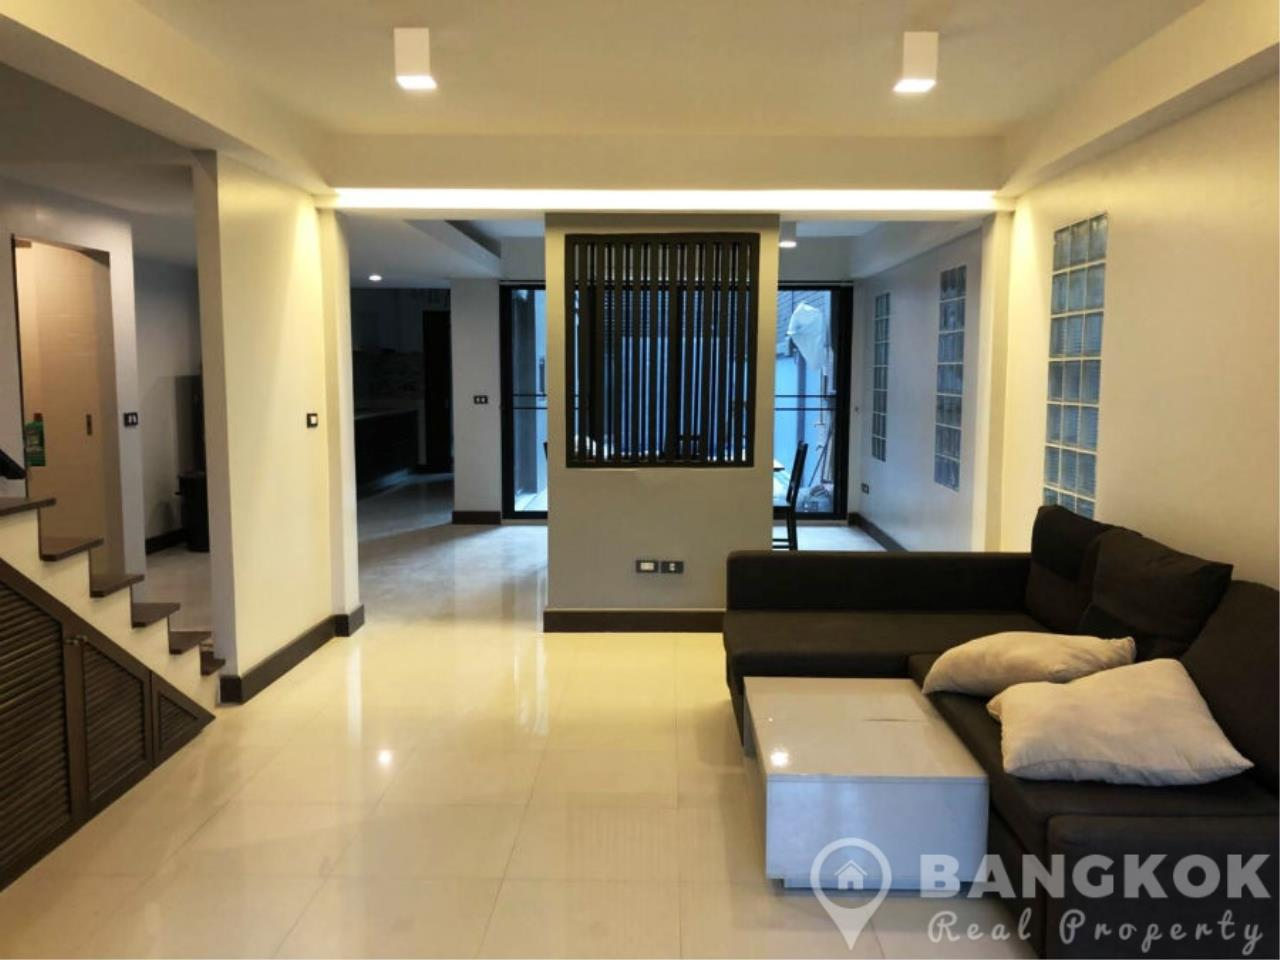 Modern Detached House in Thonglor 4 Beds with Private Swimming Pool